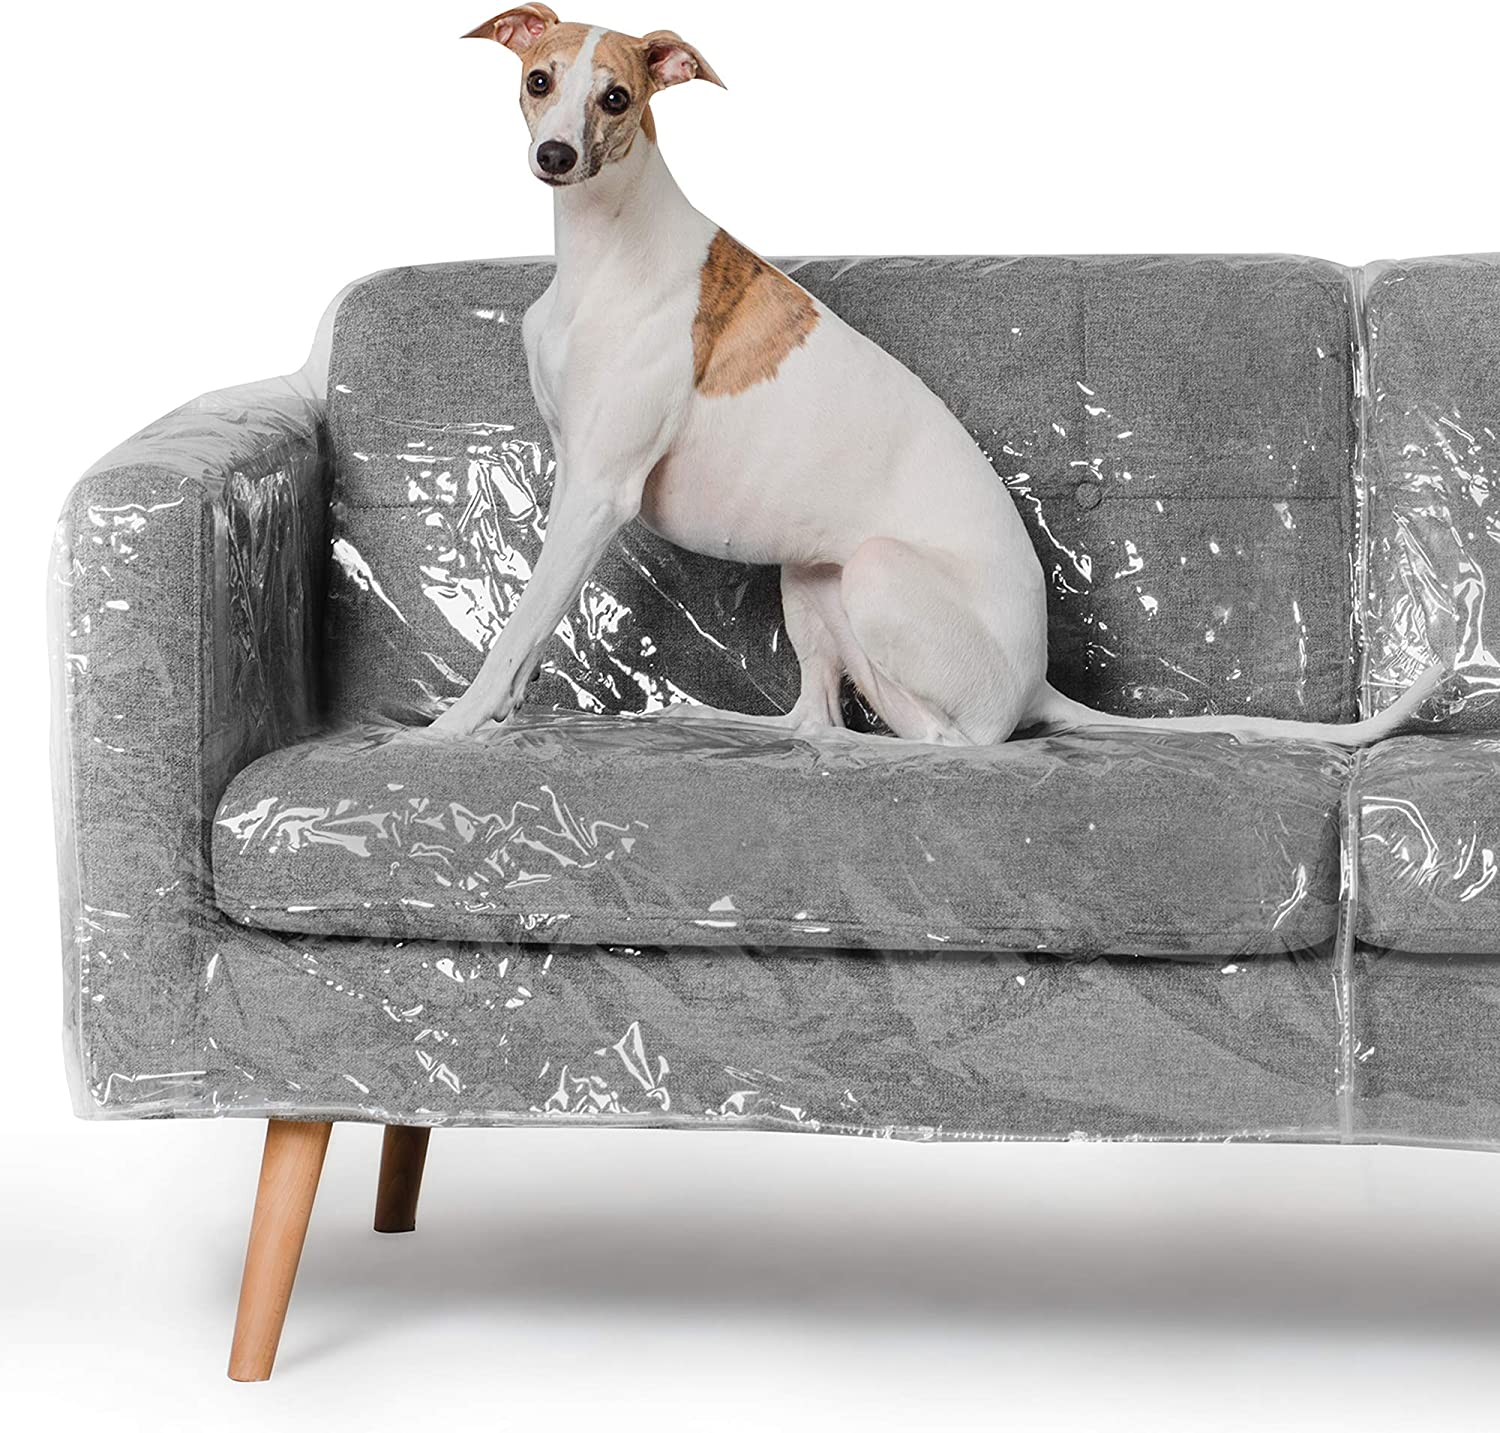 Better Than Plastic Slipcover, Vinyl Sofa Protector - 96' Waterproof Pet Furniture Covers for Cats & Dogs - Scratch & Stain - XL Clear Leather Couch Protective Slip Bag (96 W x 40 D 42 BH x 18 FH)